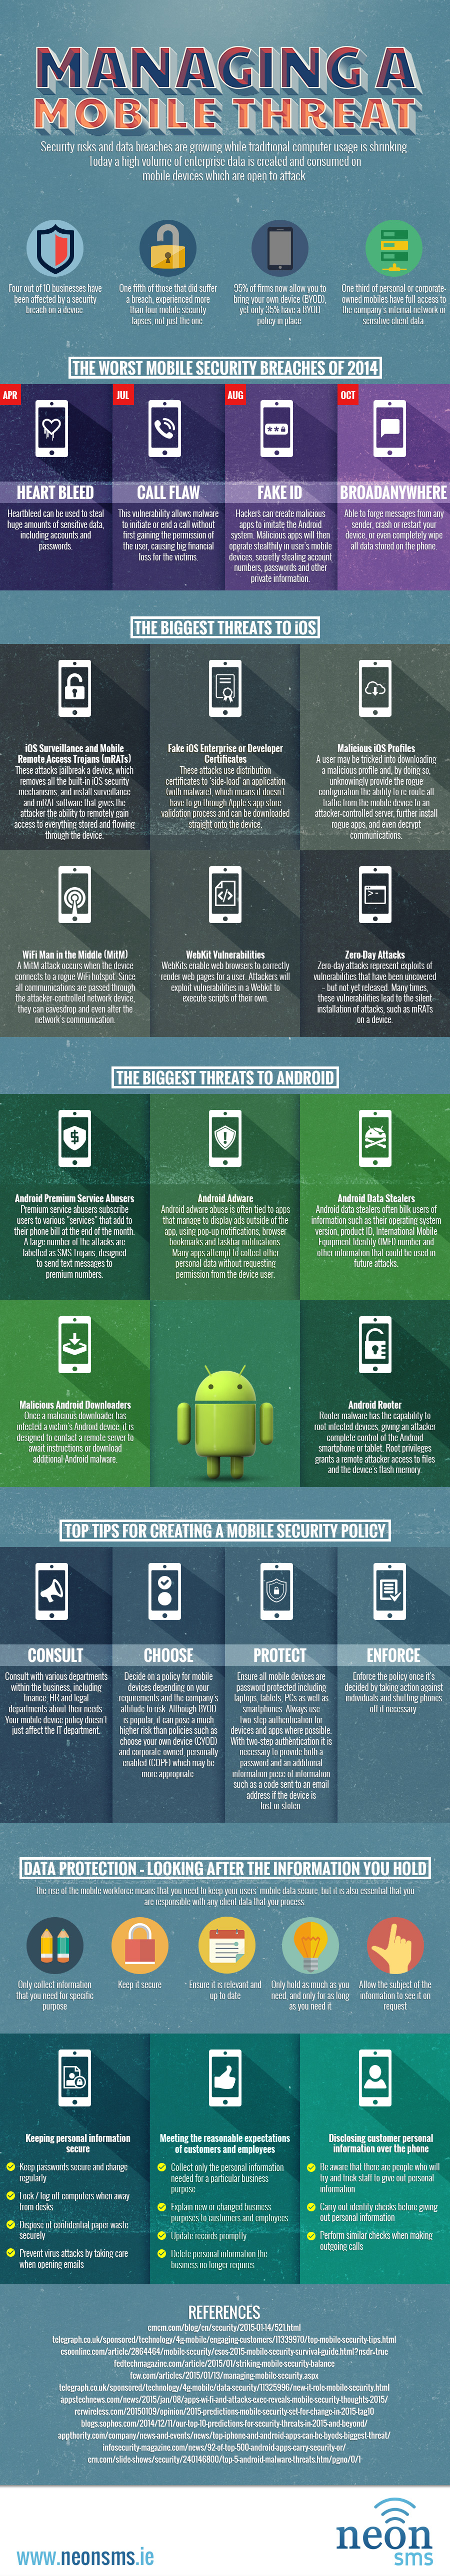 Mobile-Device-Security-Infographic